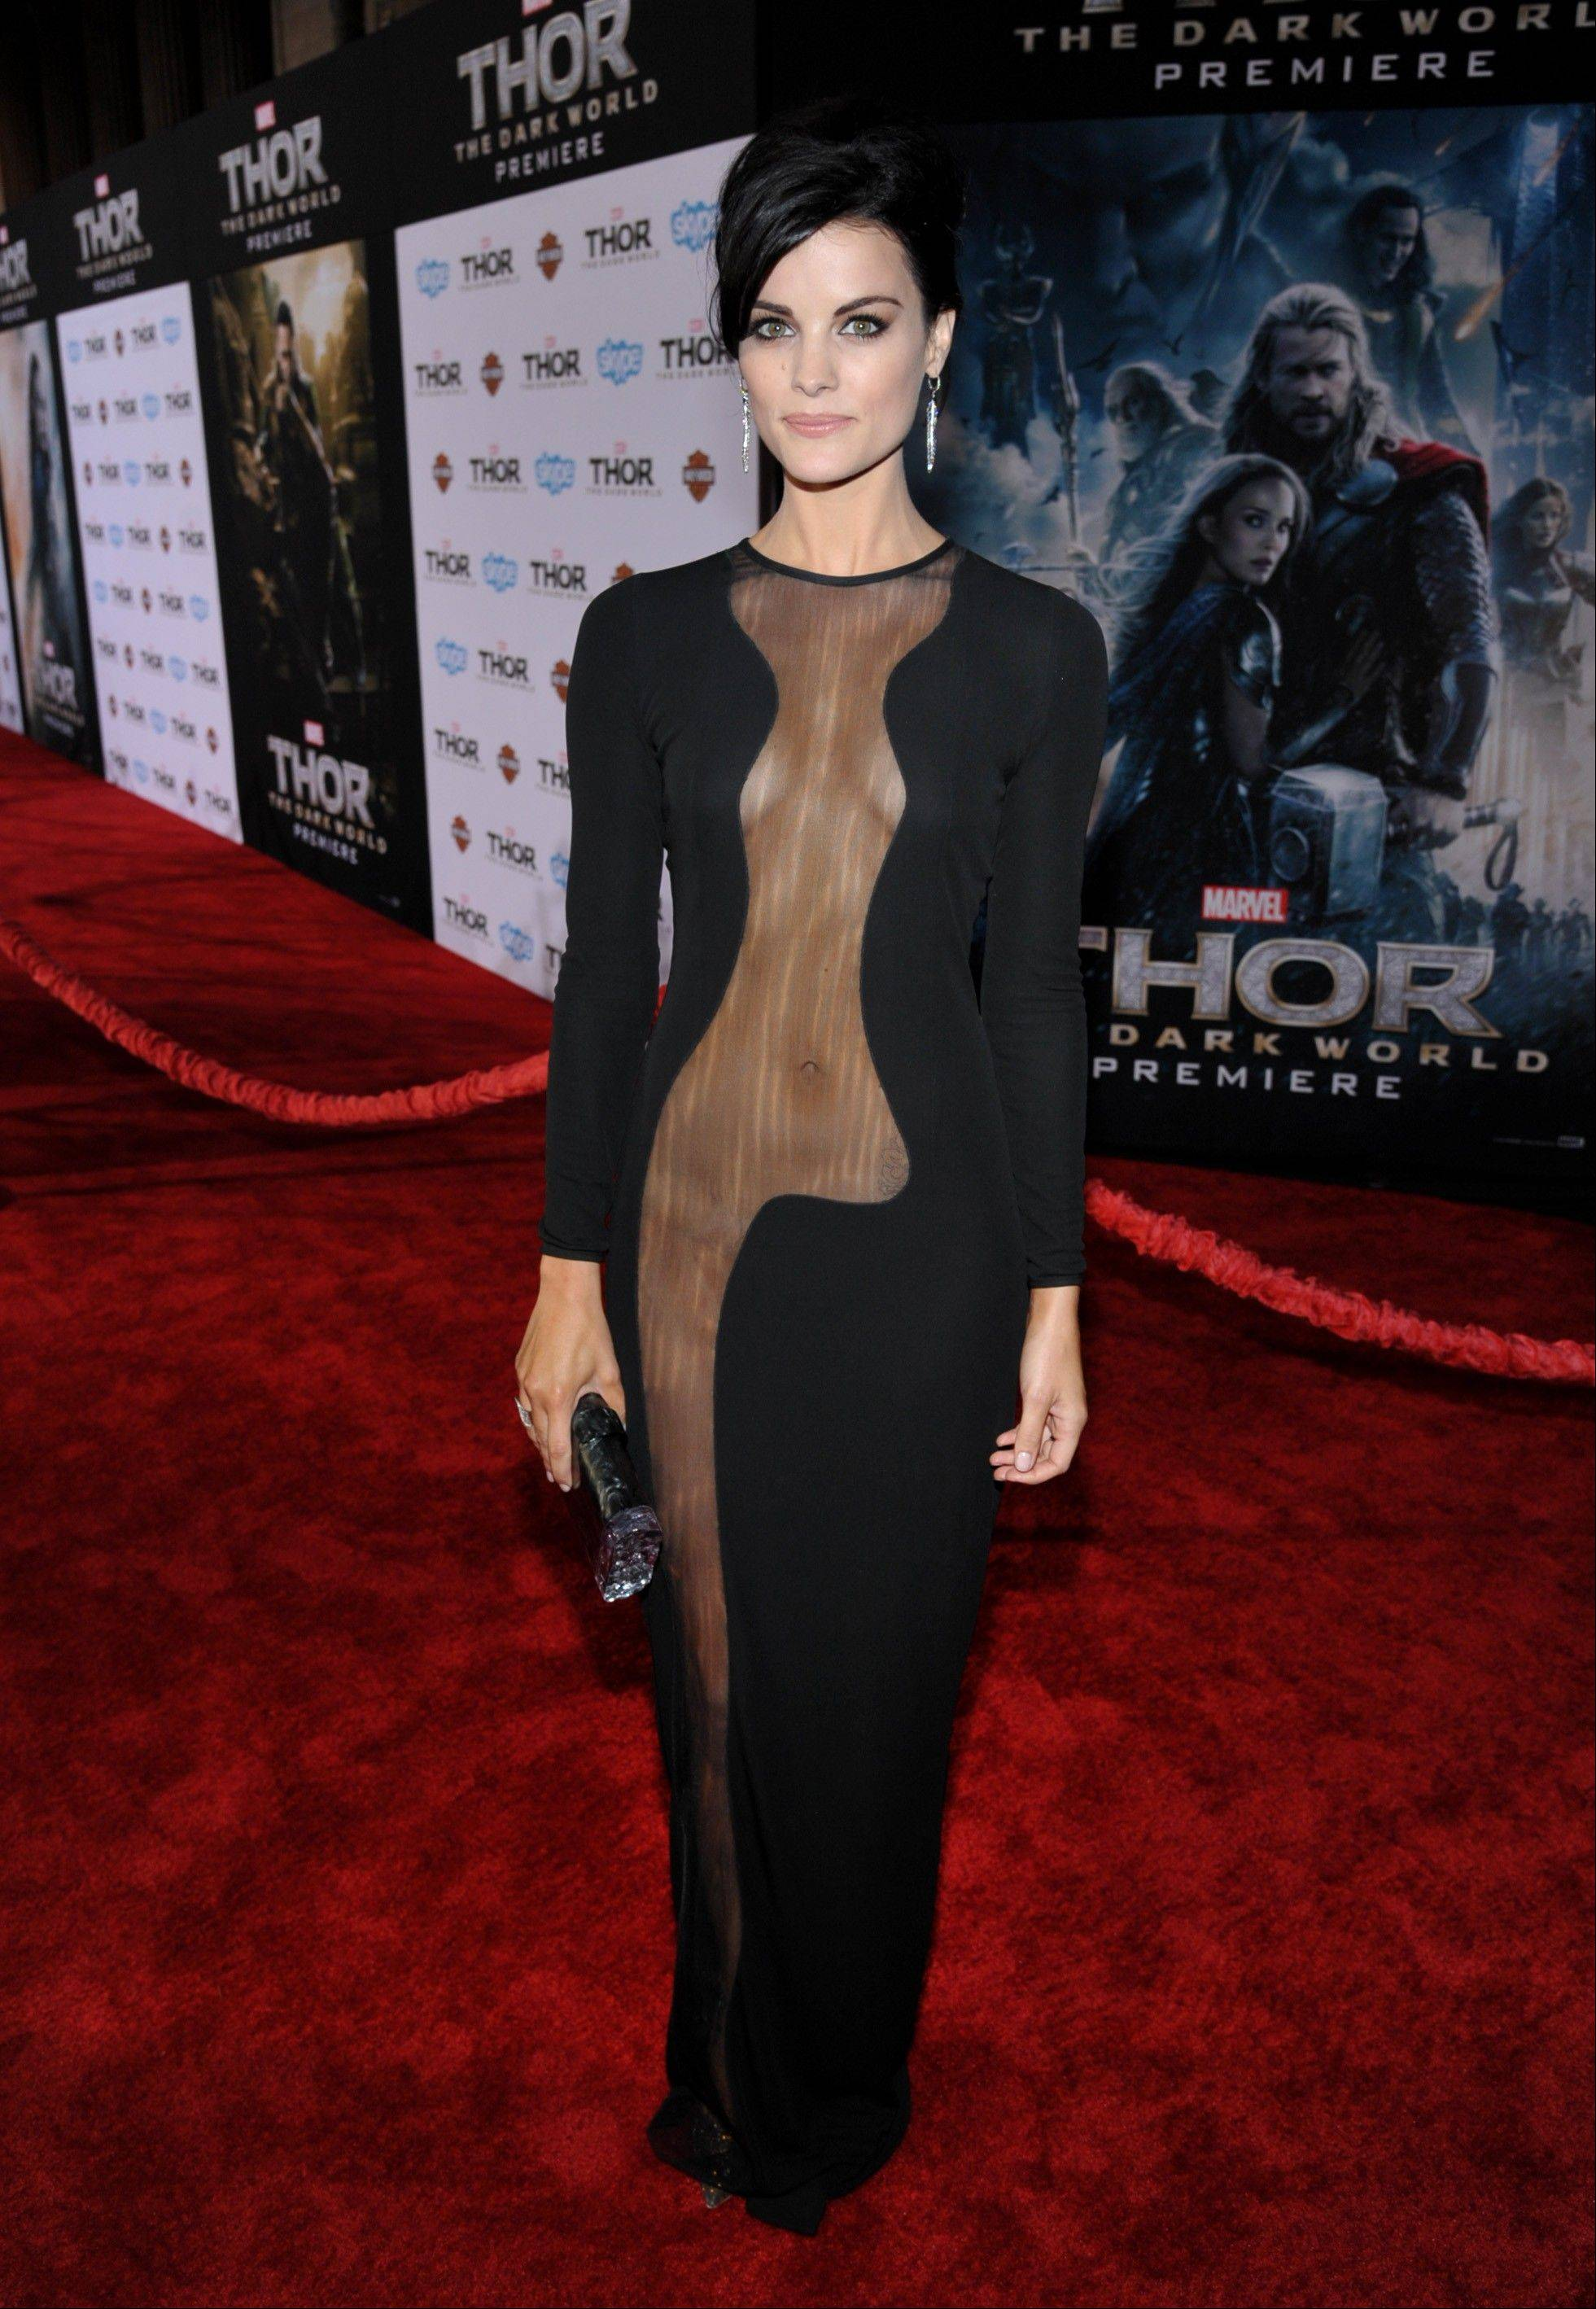 "This Nov. 4, 2013 file photo shows actress Jaimie Alexander at the U.S. premiere of ""Thor: The Dark World"" in Los Angeles. Alexander wore a black Azzaro Couture dress expanding the see-through effect to the midriff and upper regions."